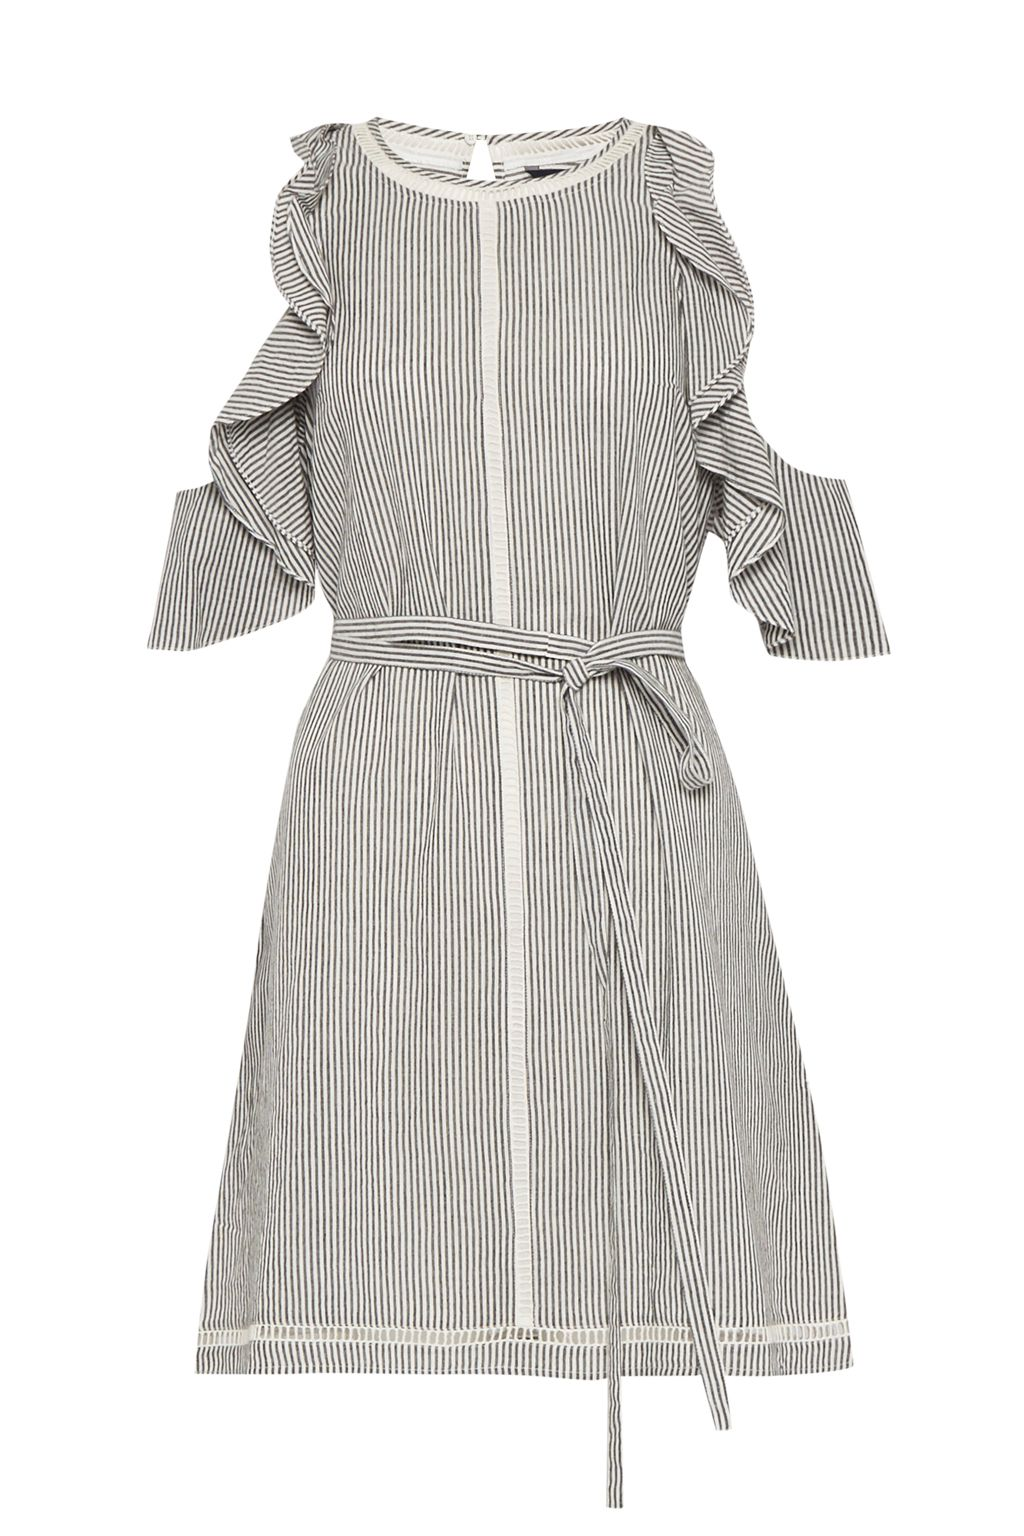 French Connection Clea Cotton Ruffled Cold Shoulder Dress, Grey